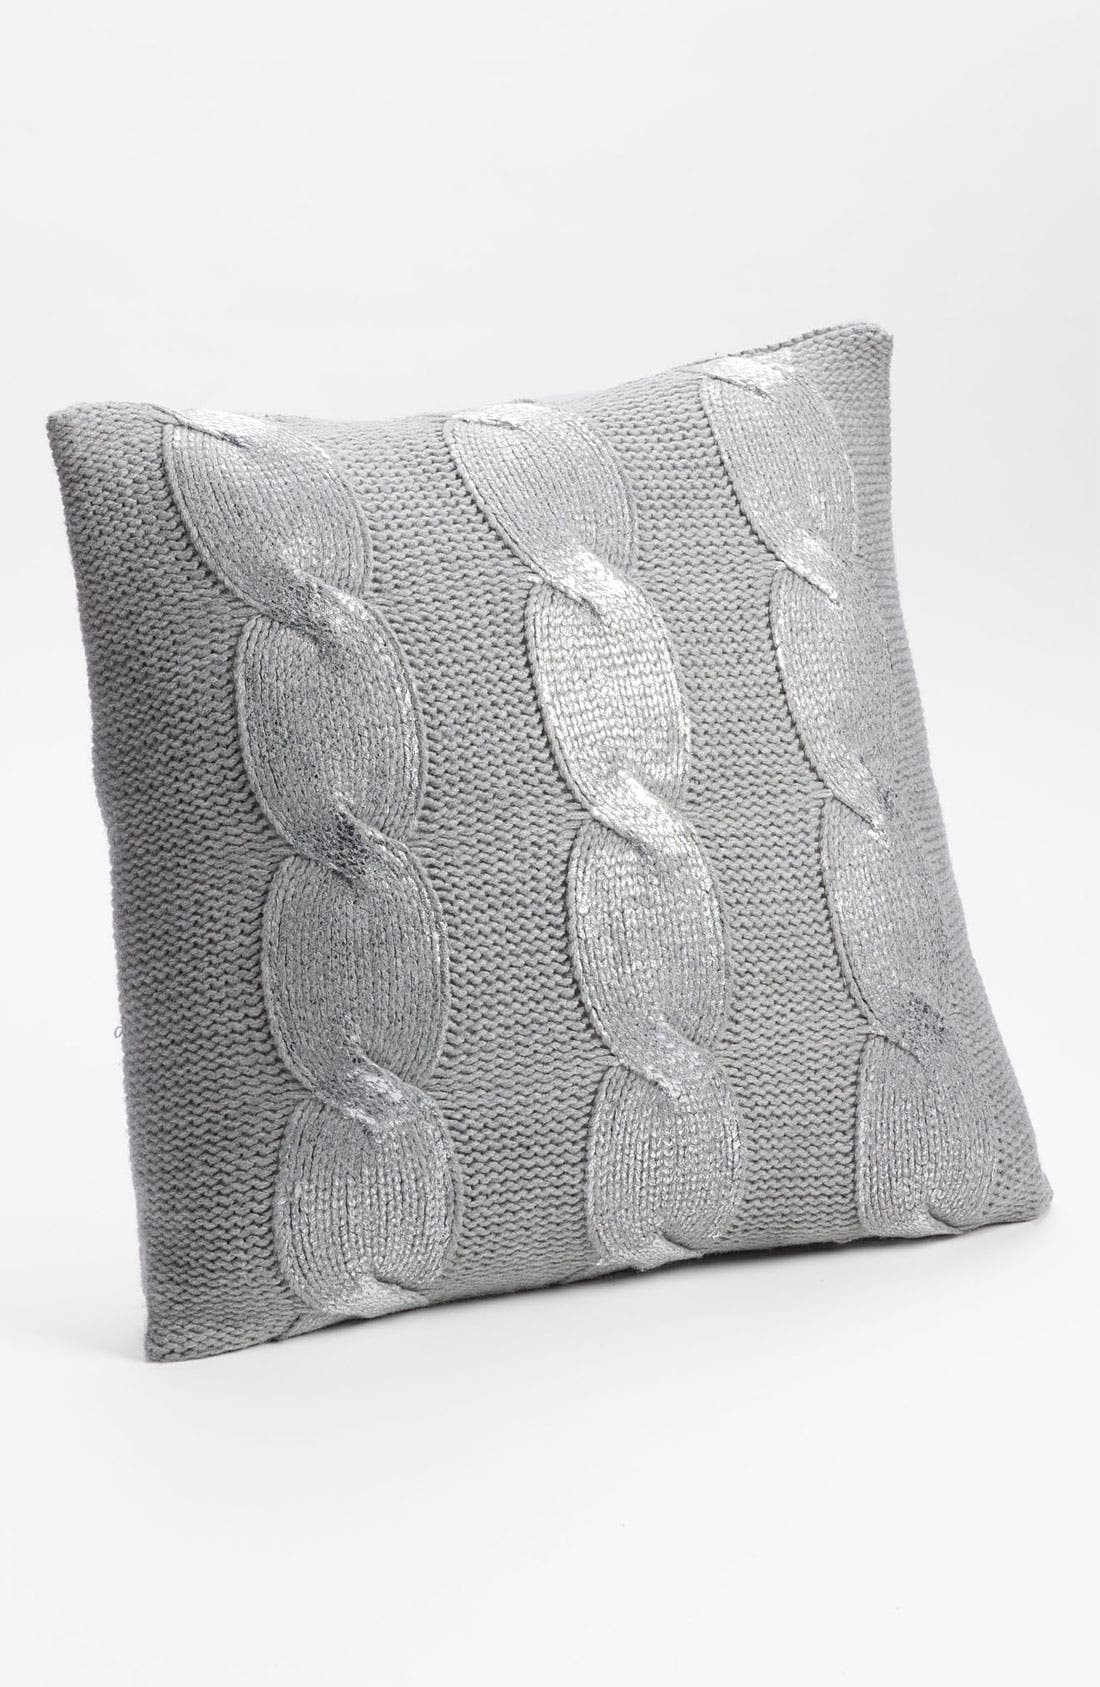 Alternate Image 1 Selected - Nordstrom at Home Aran Cable Pillow Cover